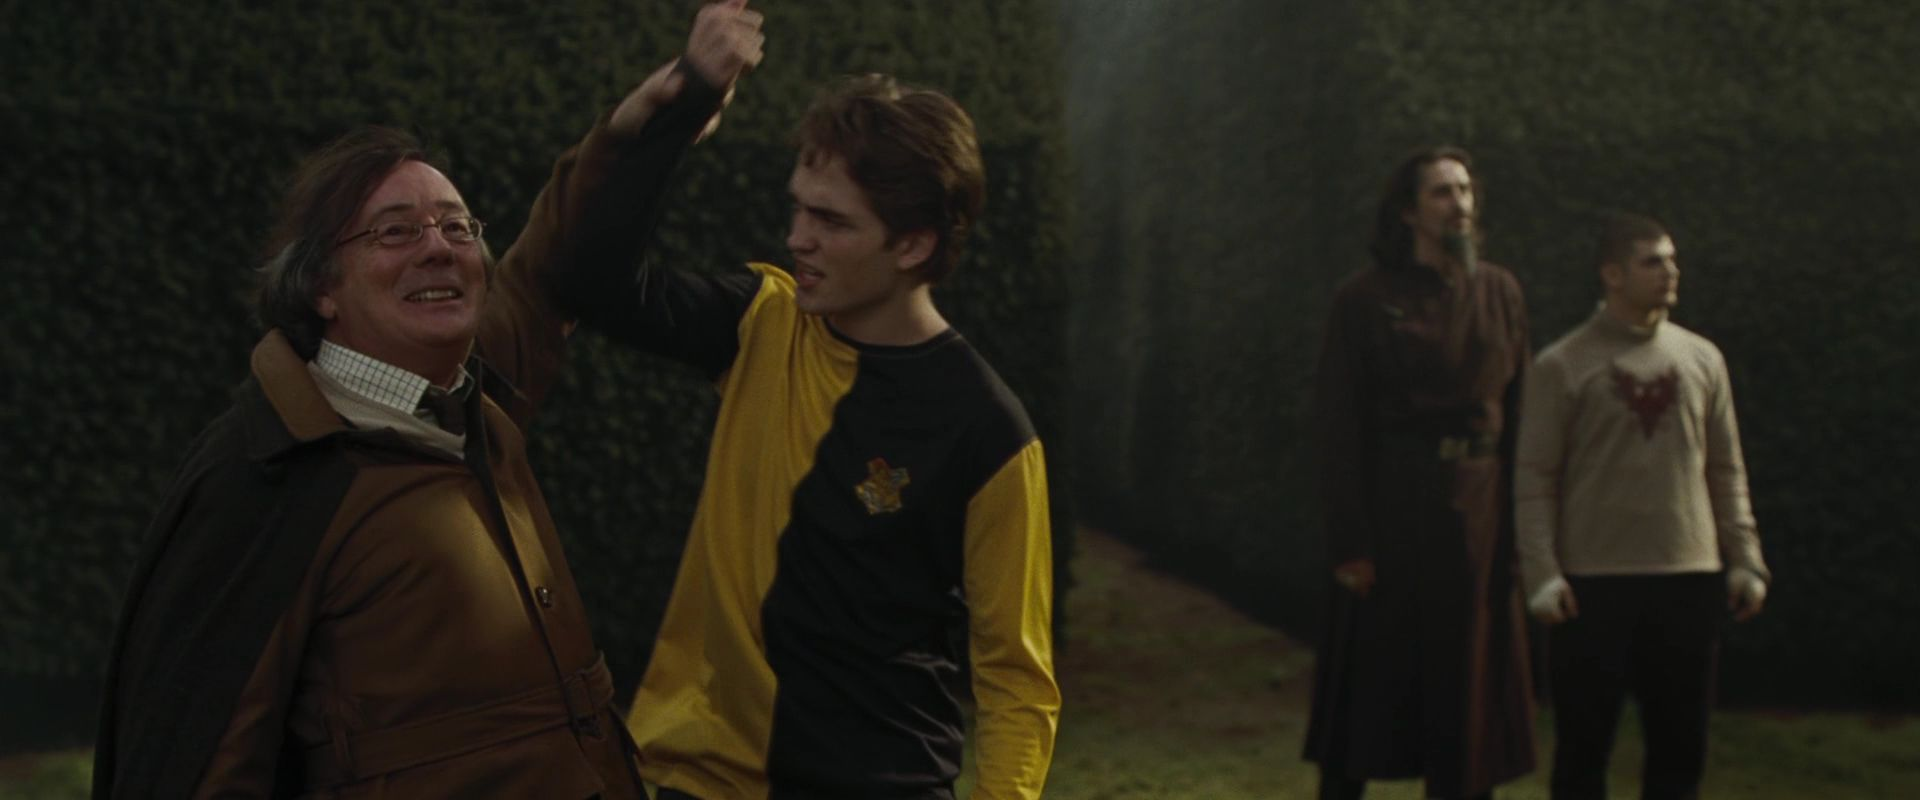 Harry Potter And The Goblet Of Fire Cedric Diggory Death Scene Goblet of Fire Cedric ...